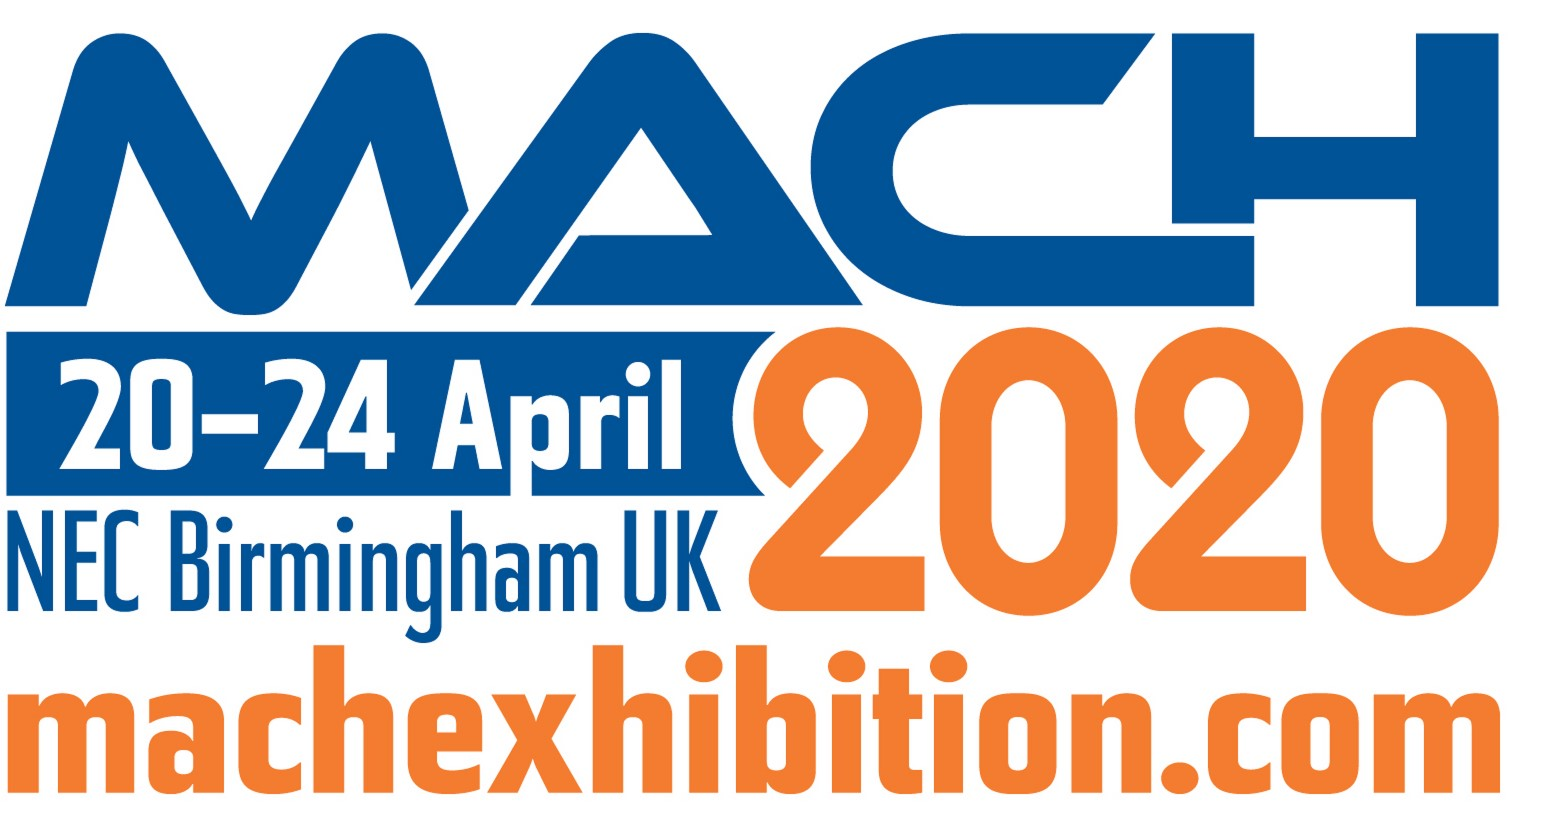 See us at MACH 2020